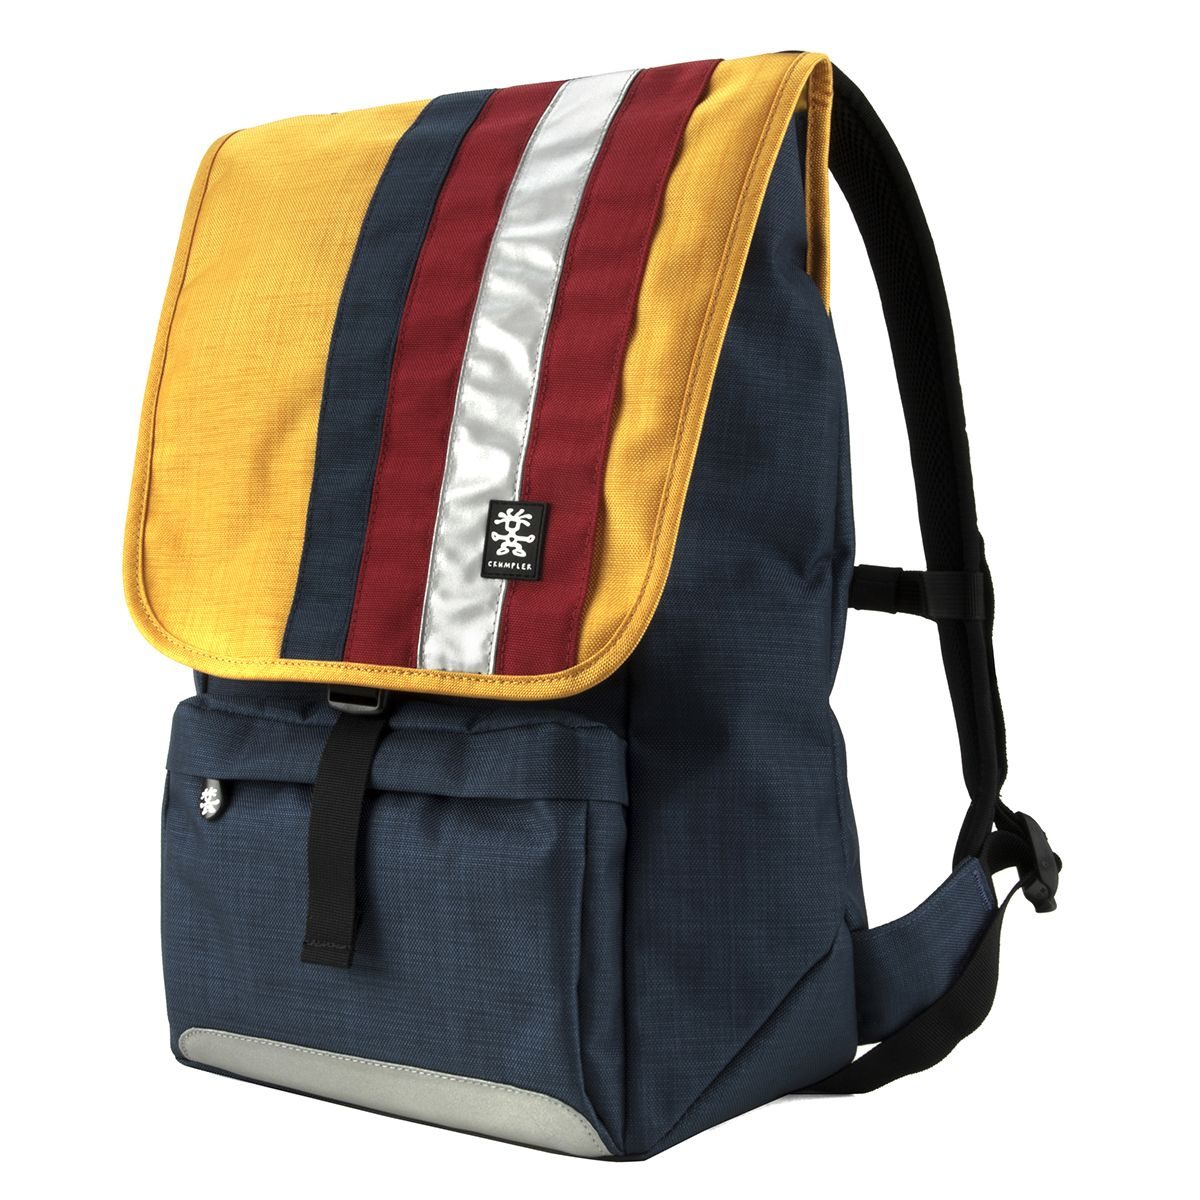 Consentimiento Momento Derribar  Dinky Di Backpack - L - Crumpler | Backpacks, Photo bag, Bags